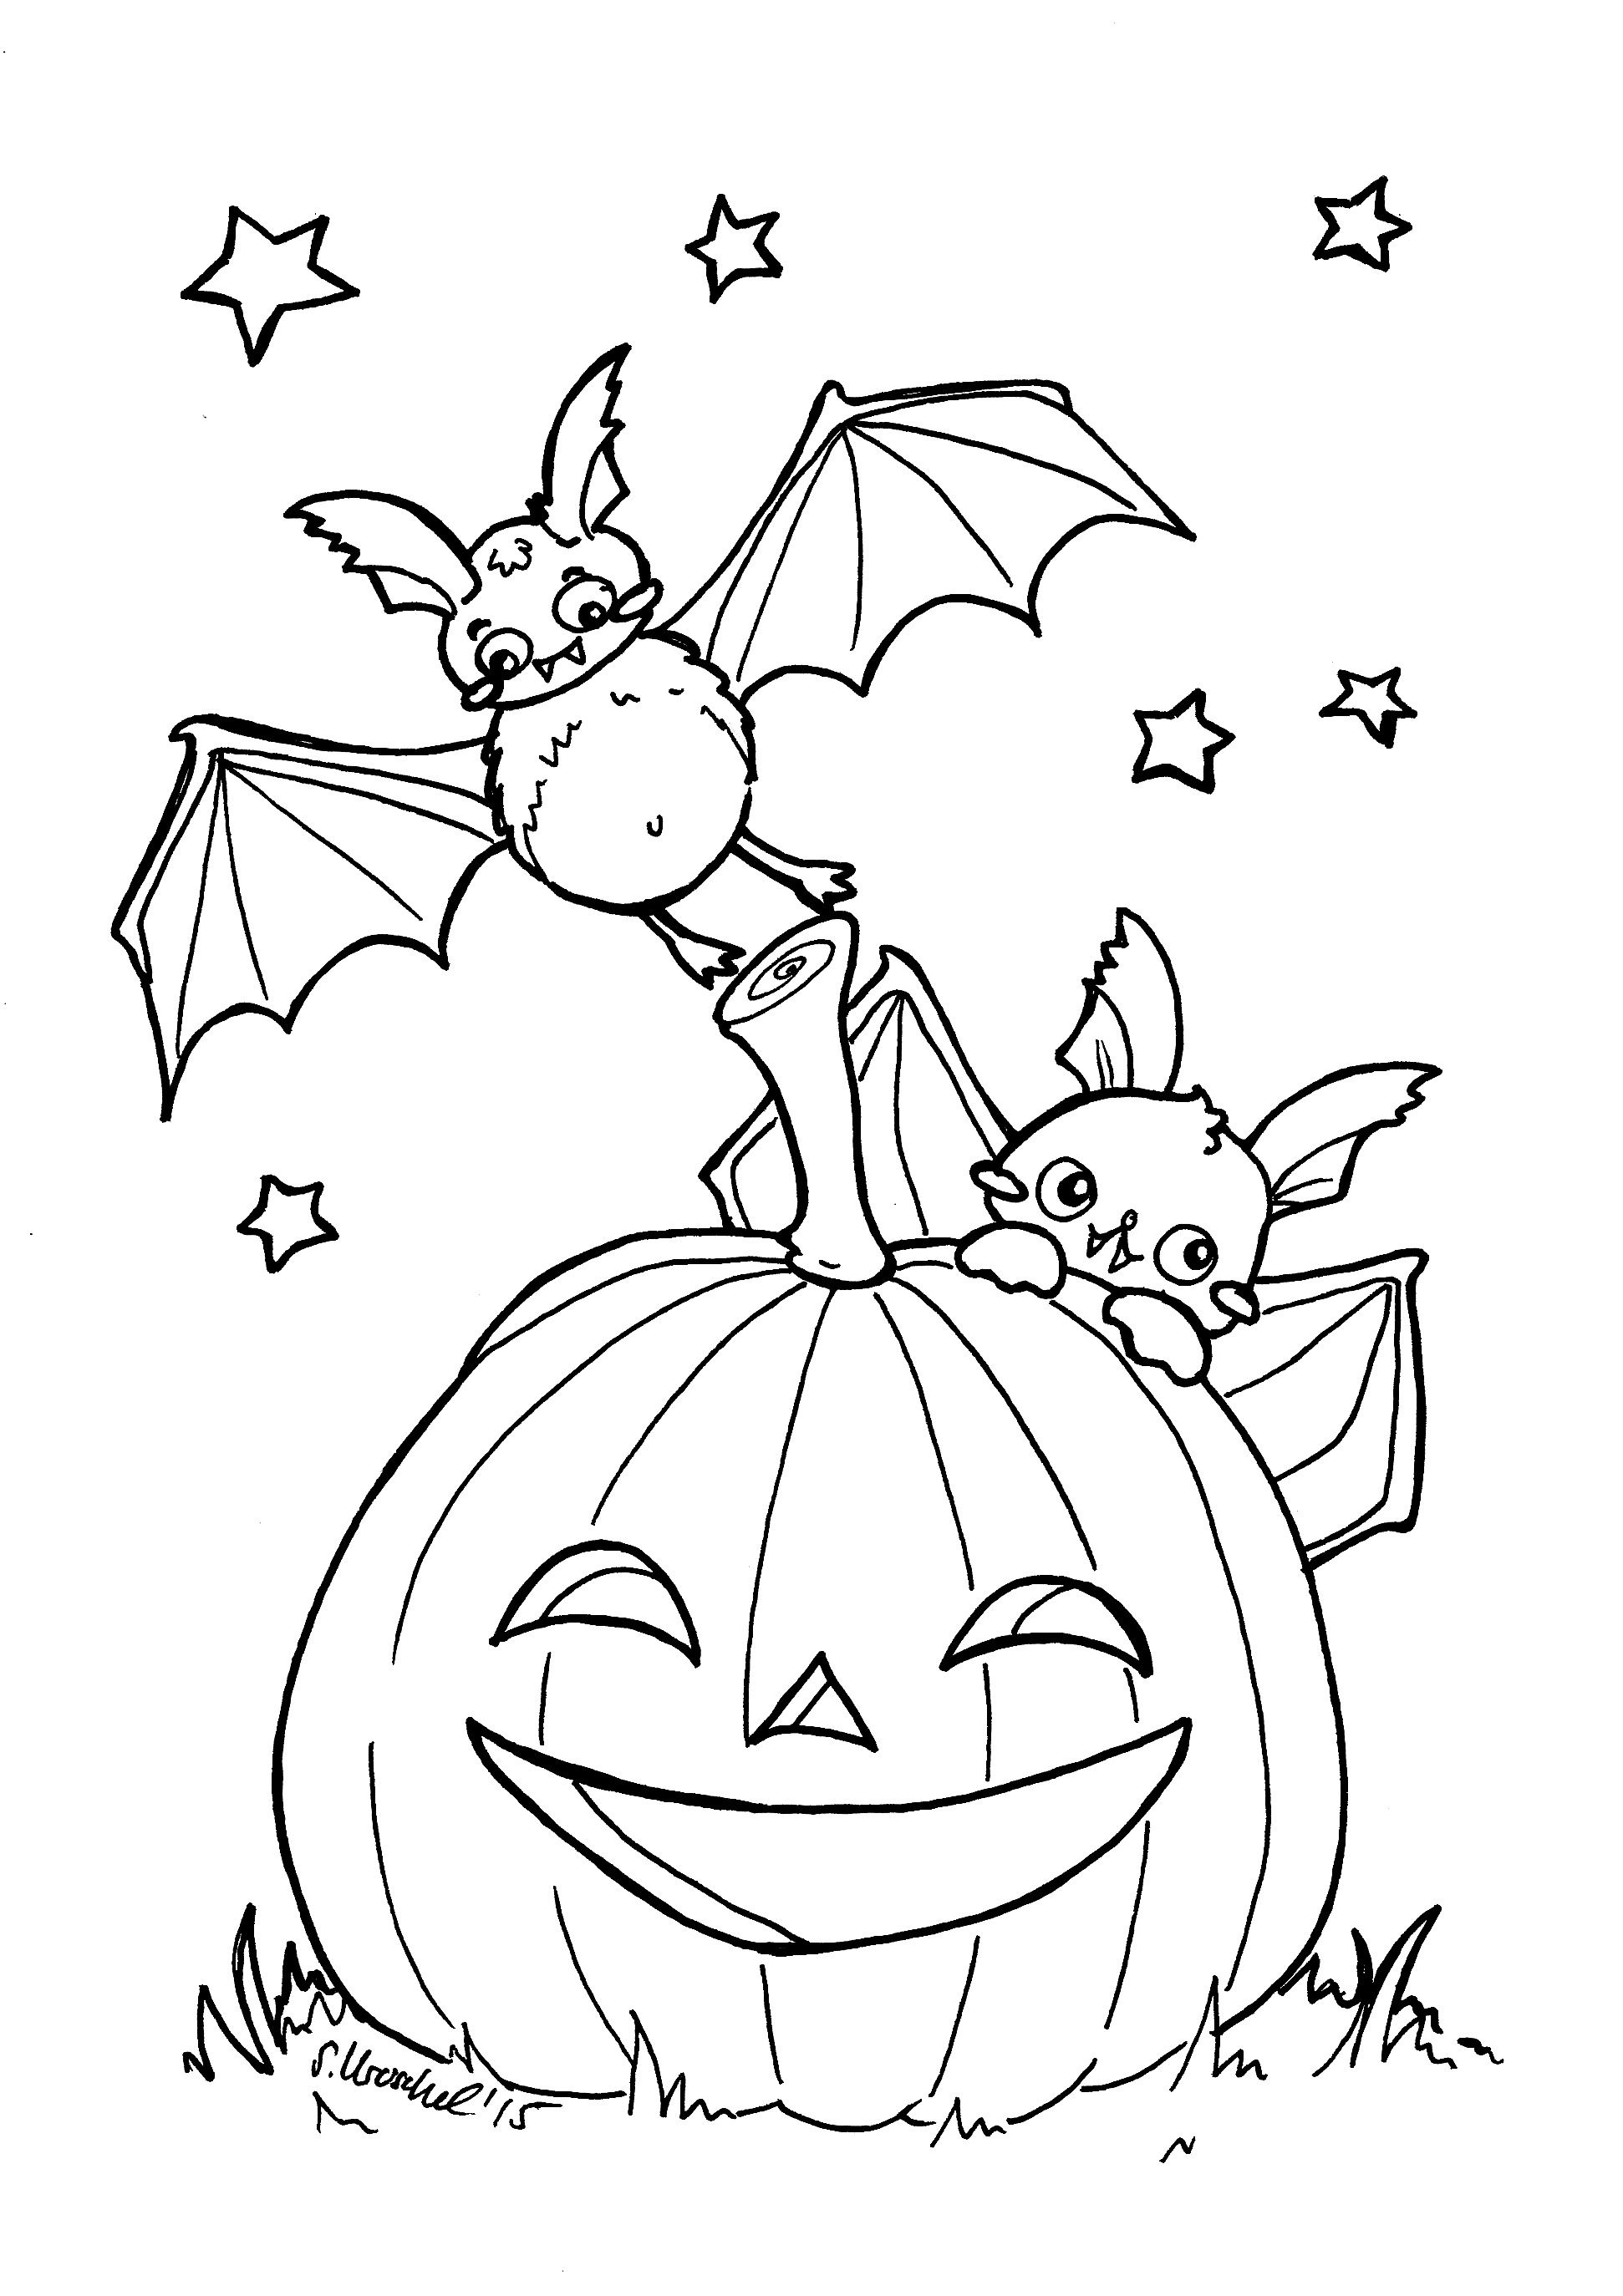 Ausmalbilder November zum Ausdrucken  #artwork #illustration #graphicdesign #printables #free #halloweencoloringpages